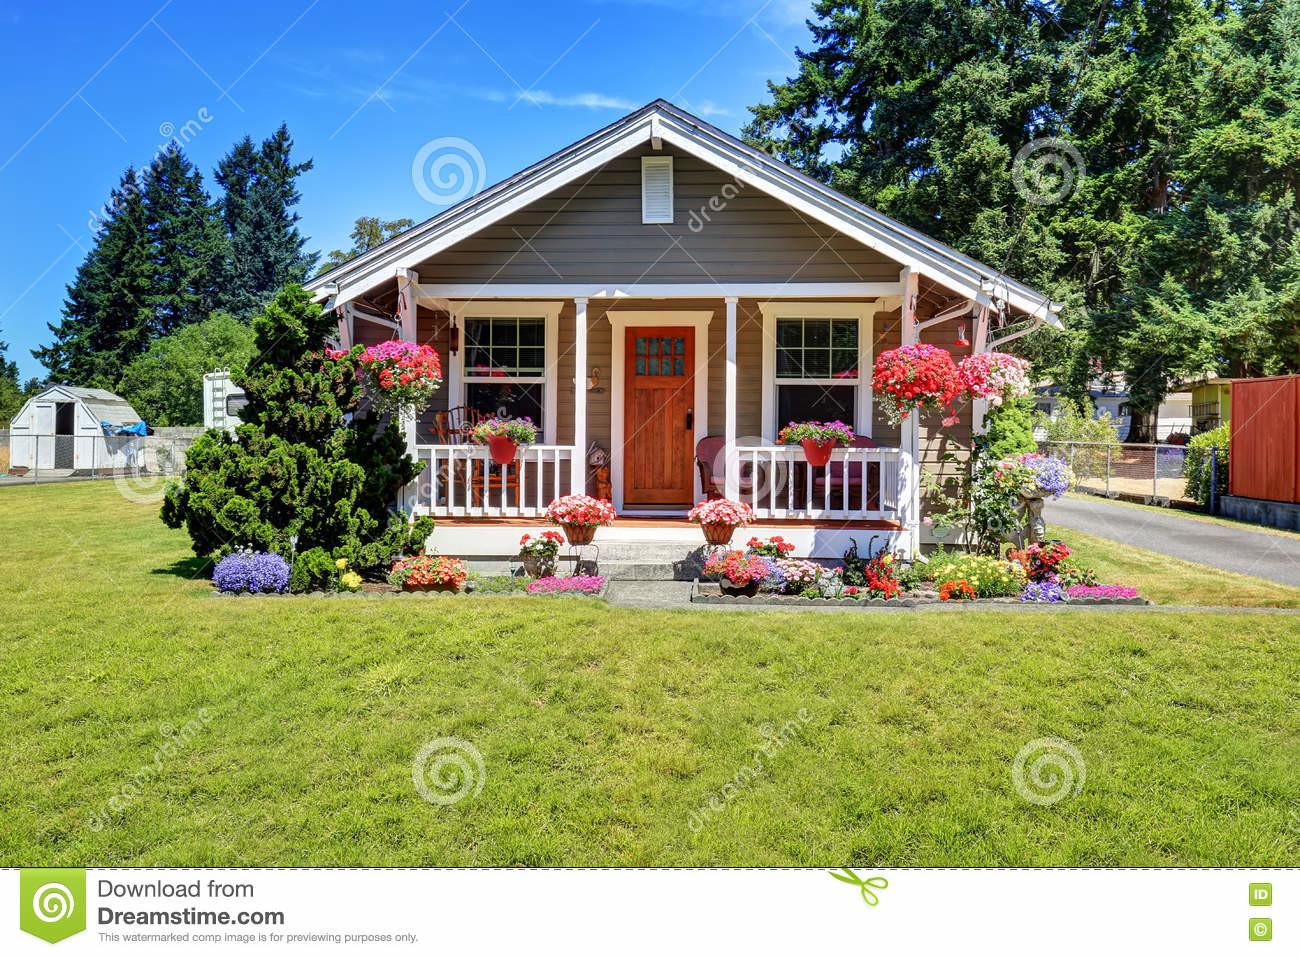 Cute American House Exterior Covered Porch Flower